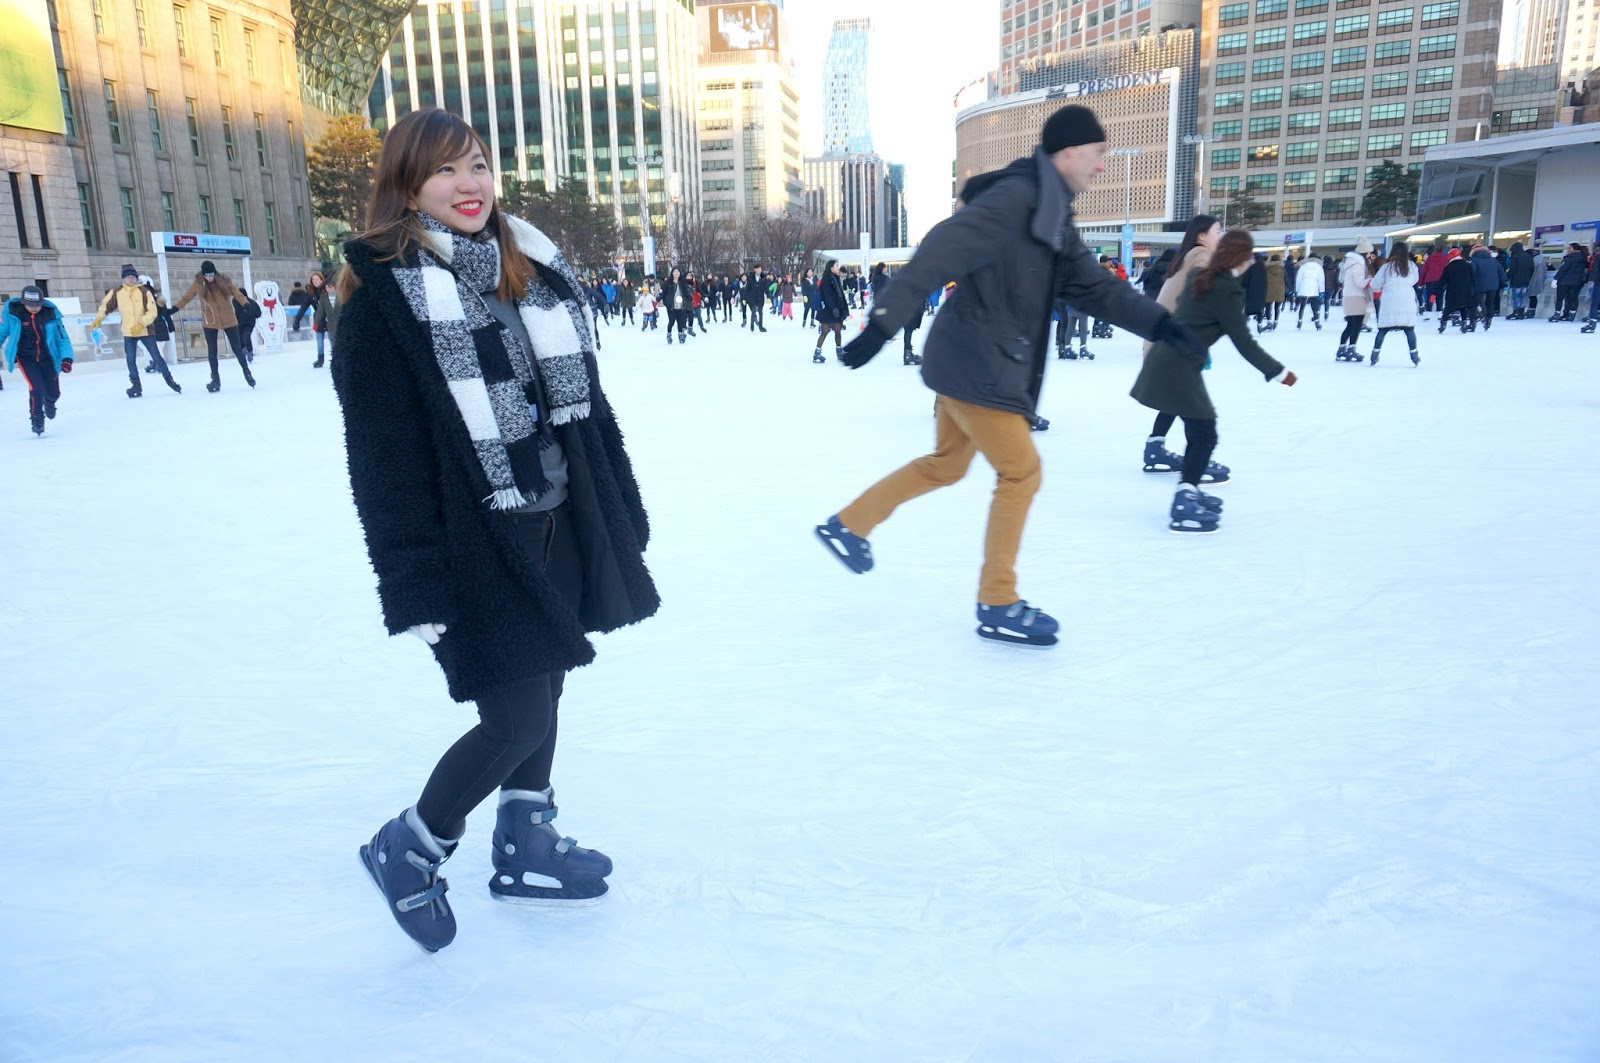 Walk with cham outdoor skating at seoul plaza seoul south korea mighty ducks is one of the movies that made a big impact on my childhood life i remember during summer we would roller skate at a park in makati joining solutioingenieria Choice Image